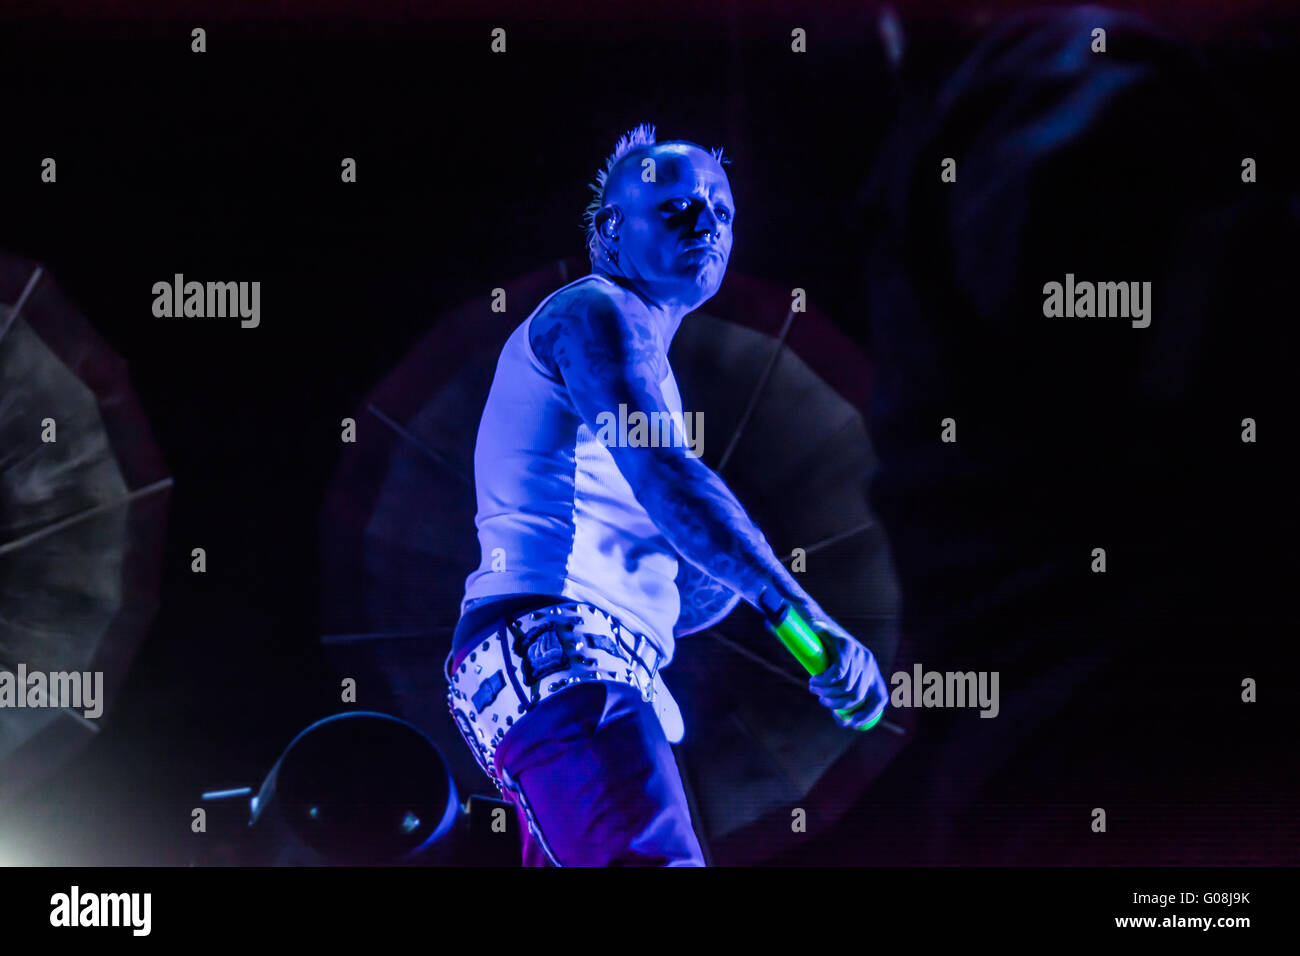 The prodigy U.K electronic music band ending with a concert, the music festival Vive latino 2016 - Stock Image